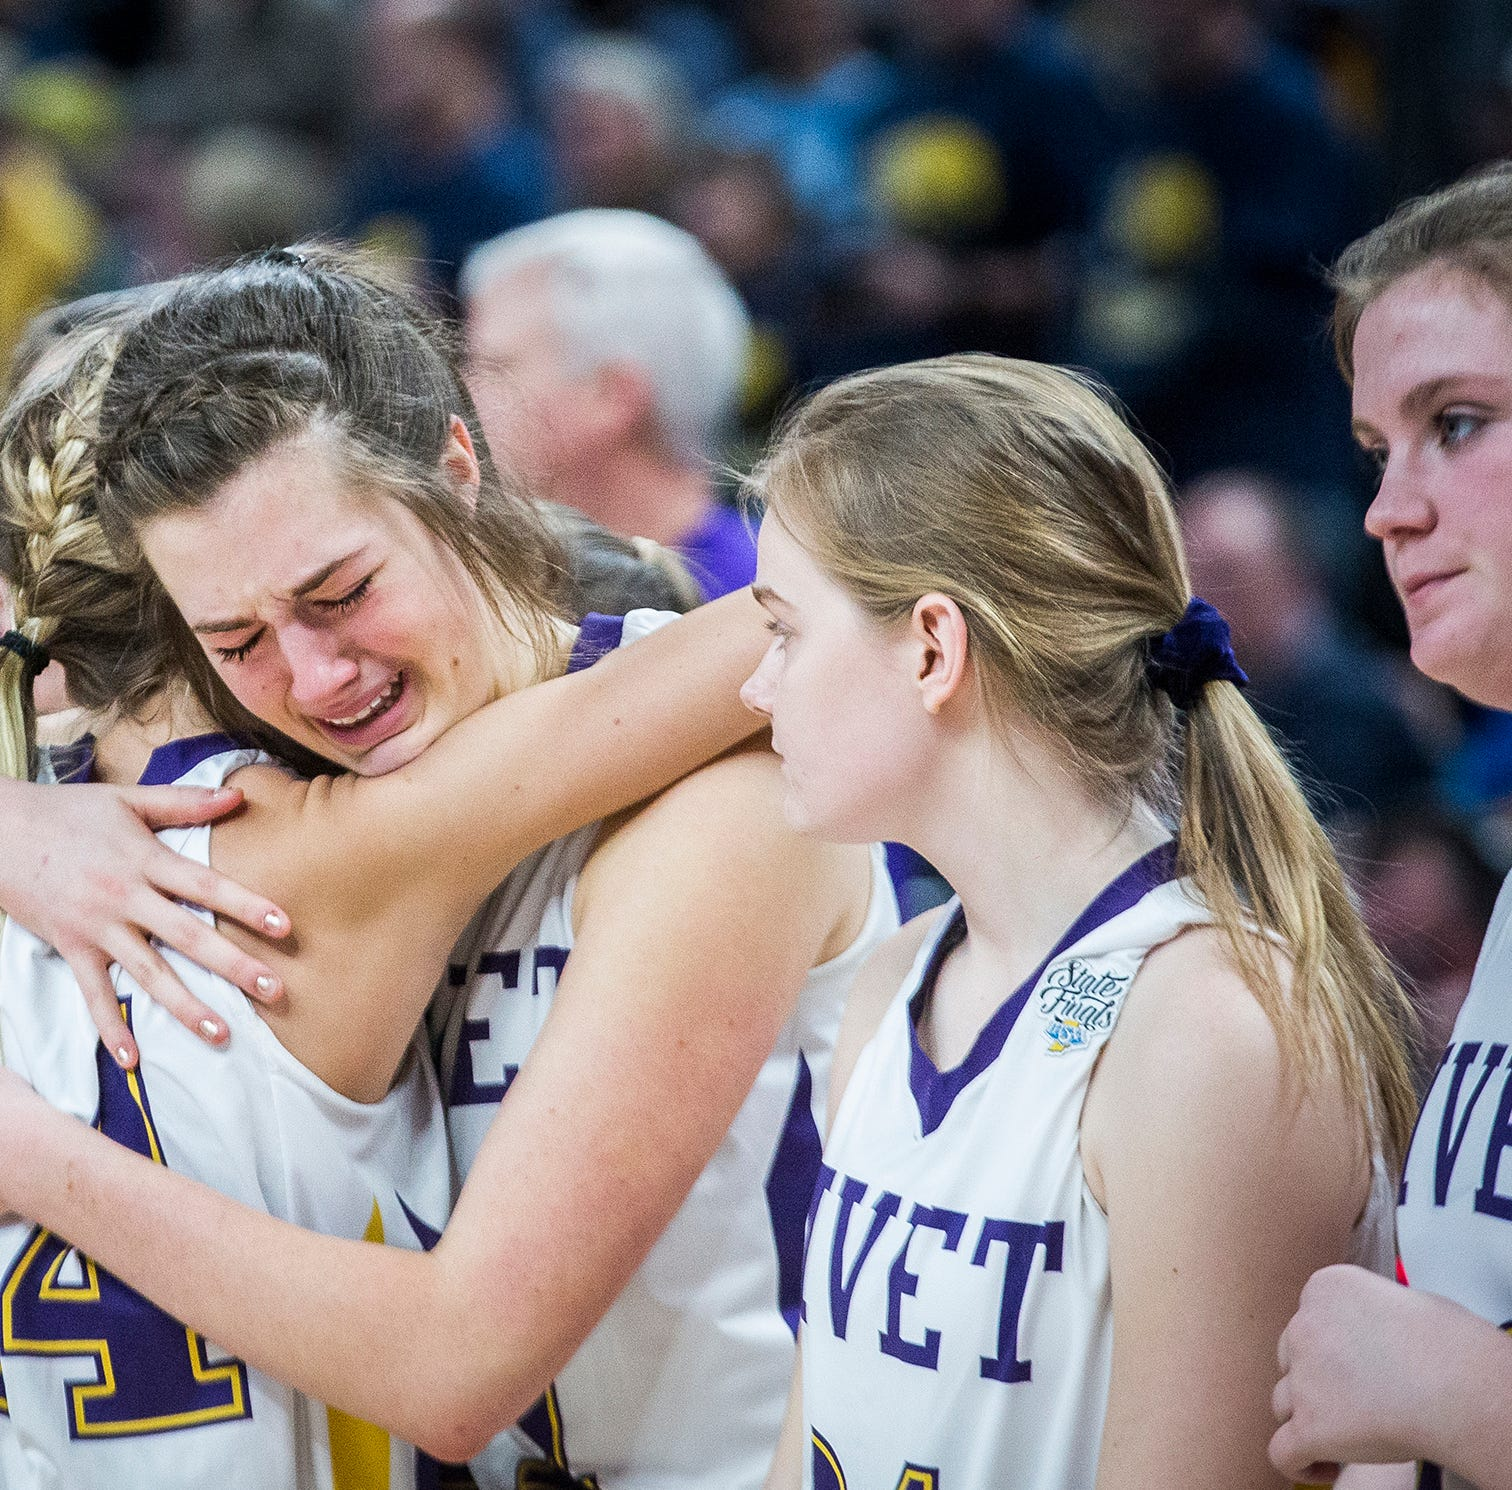 Marquette Catholic knocks out Vincennes Rivet in Class 1A state championship